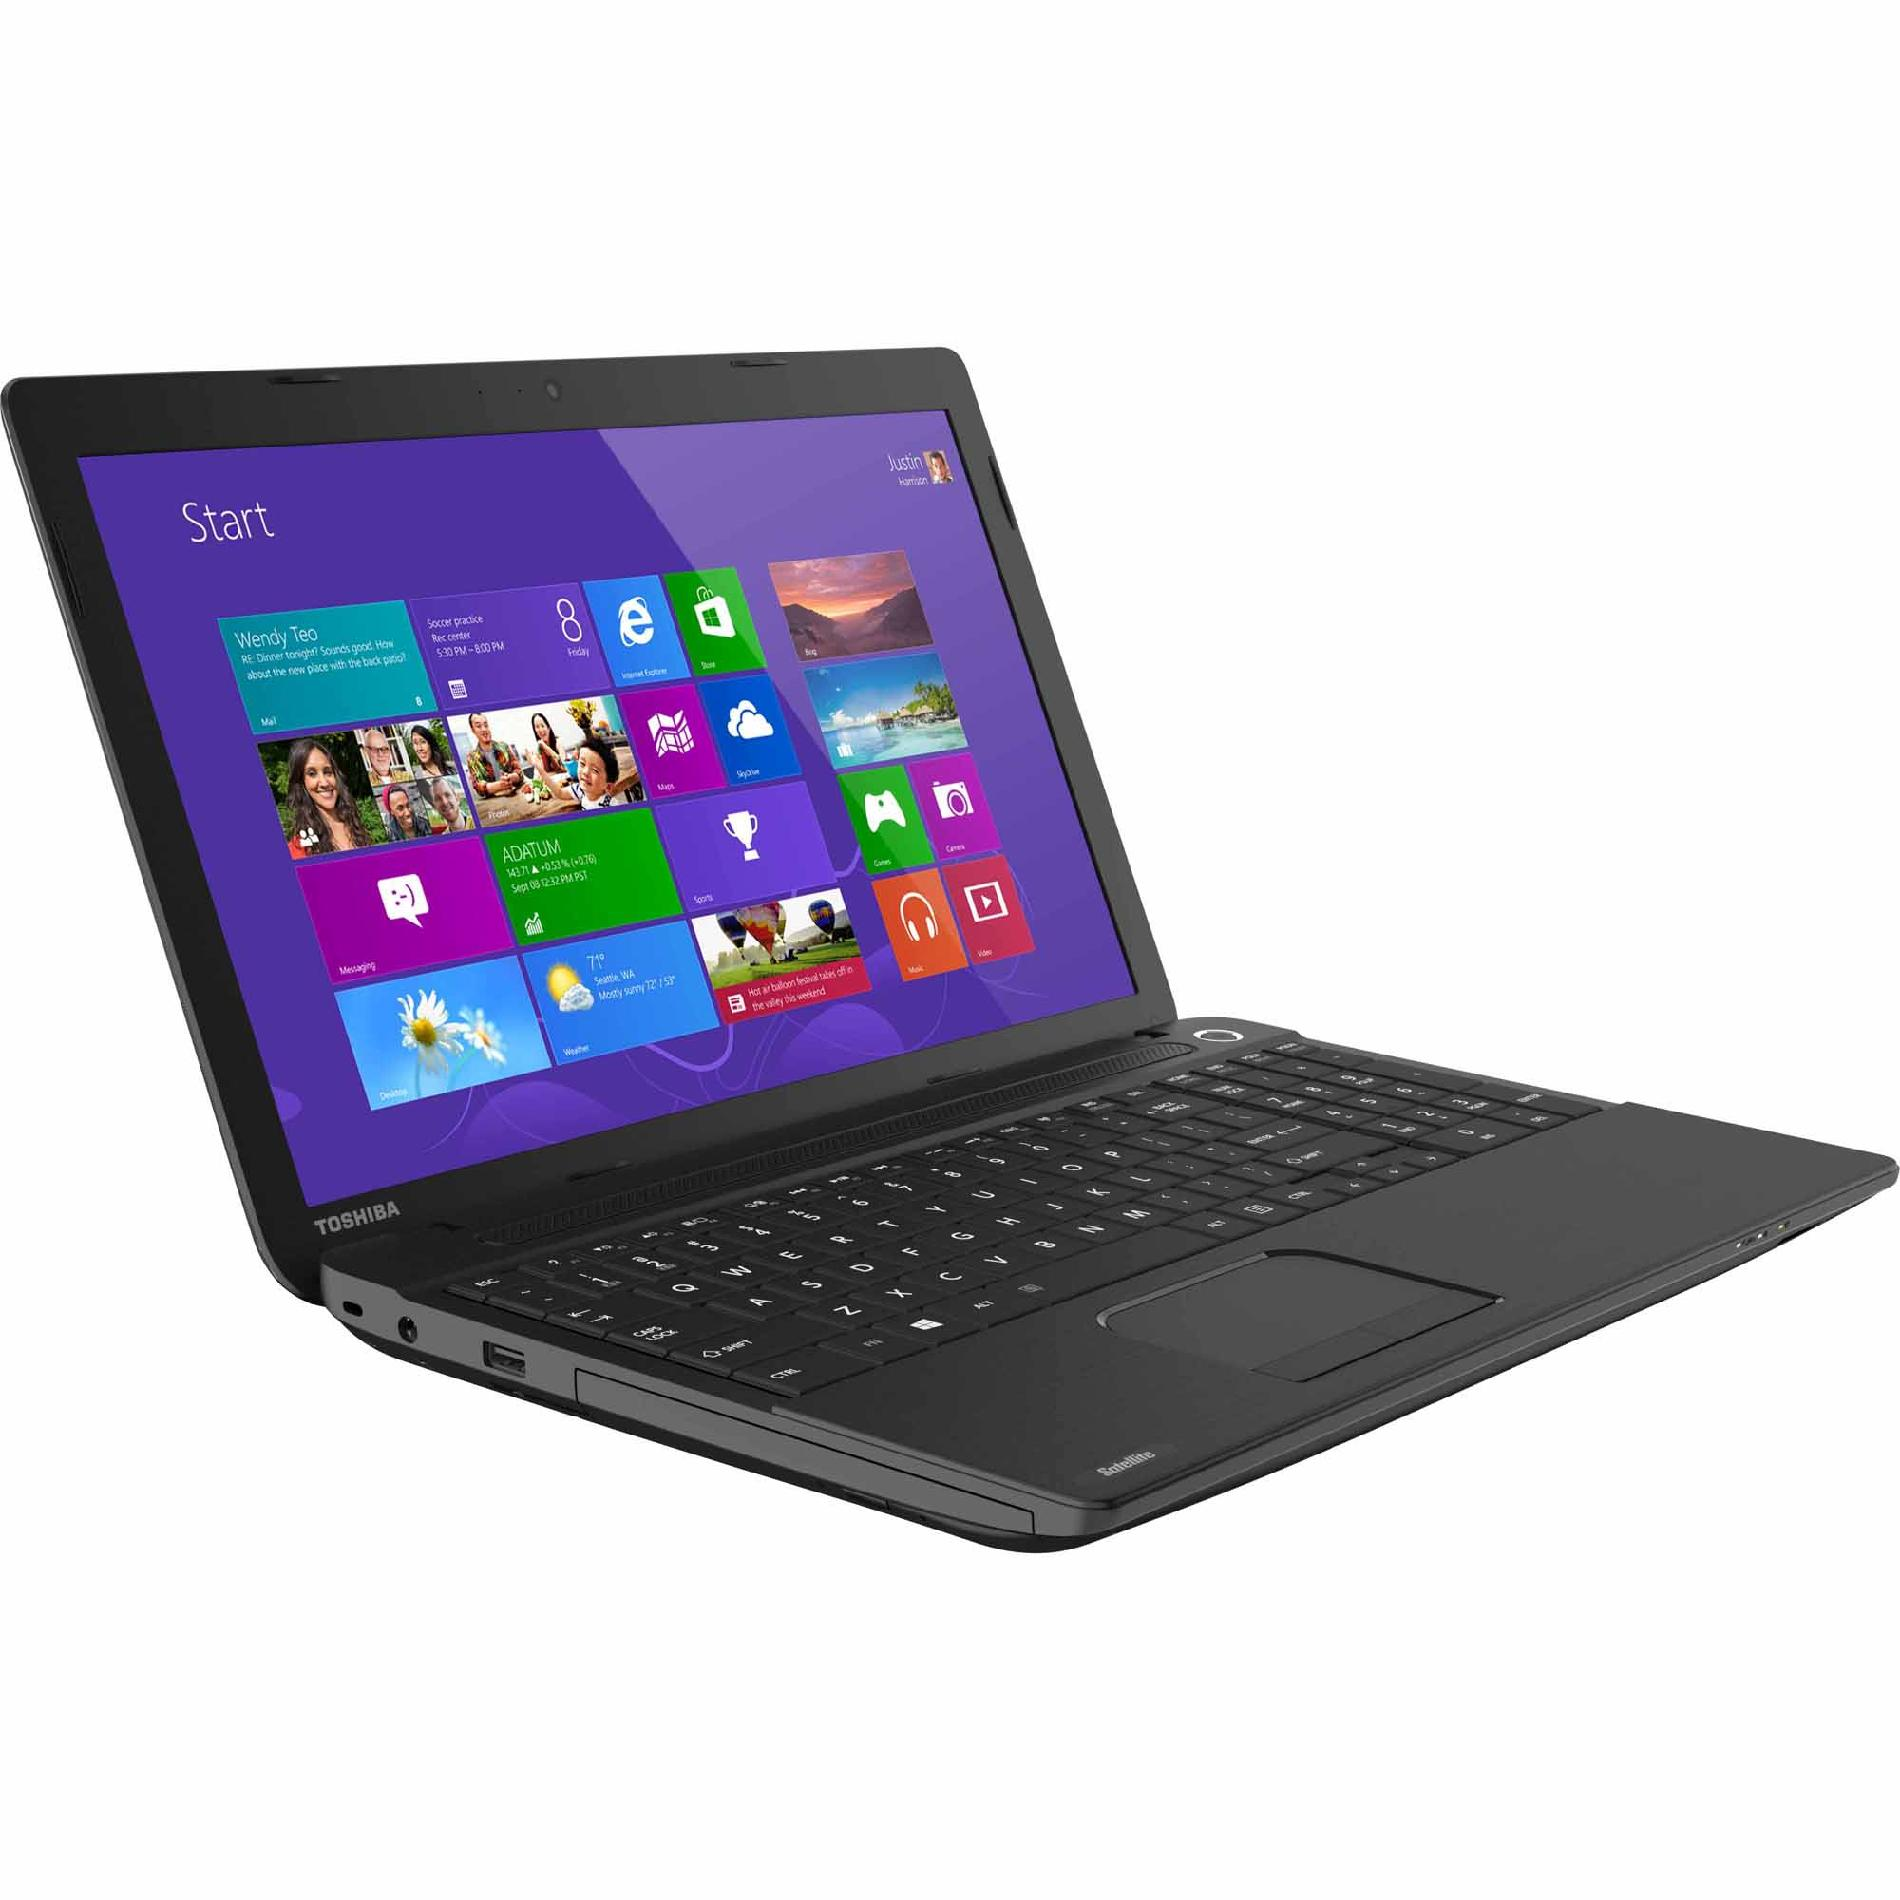 "Toshiba Notebook Satellite C55DA Series 1.0GHz AMD E1-2100 Processor 15.6"" Display"